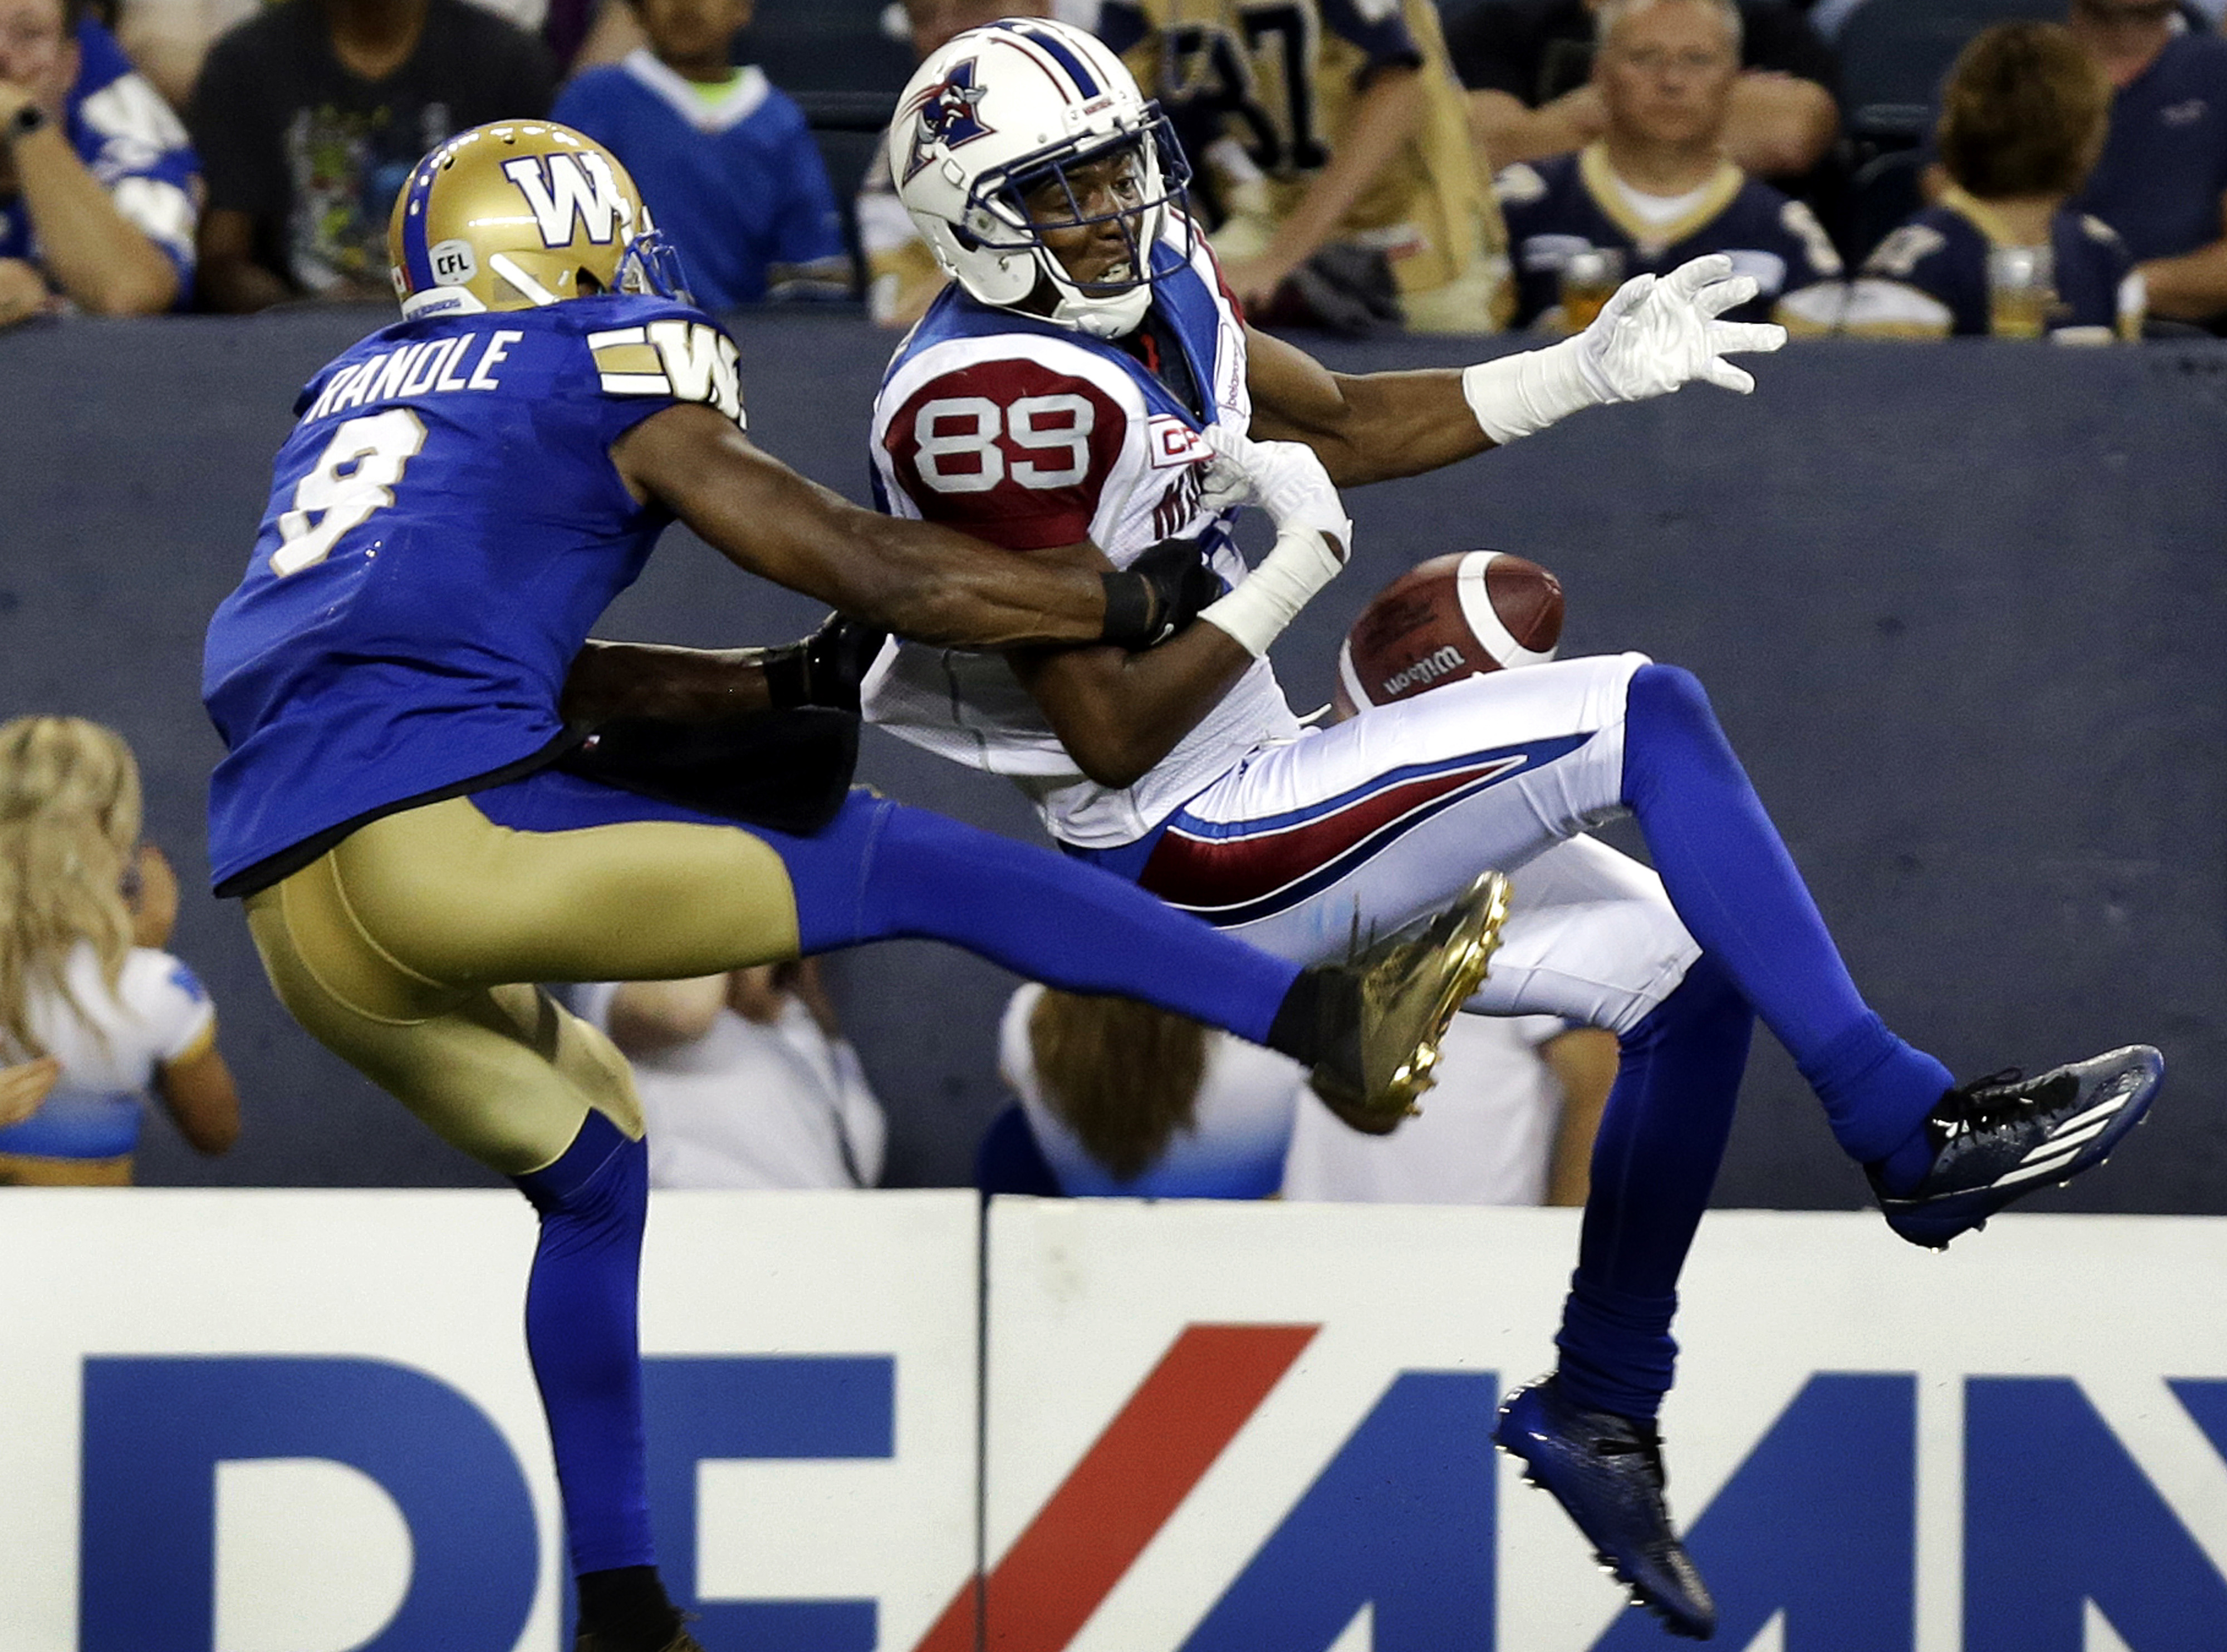 CFL Football - Winnipeg Blue Bombers v Montreal Alouettes